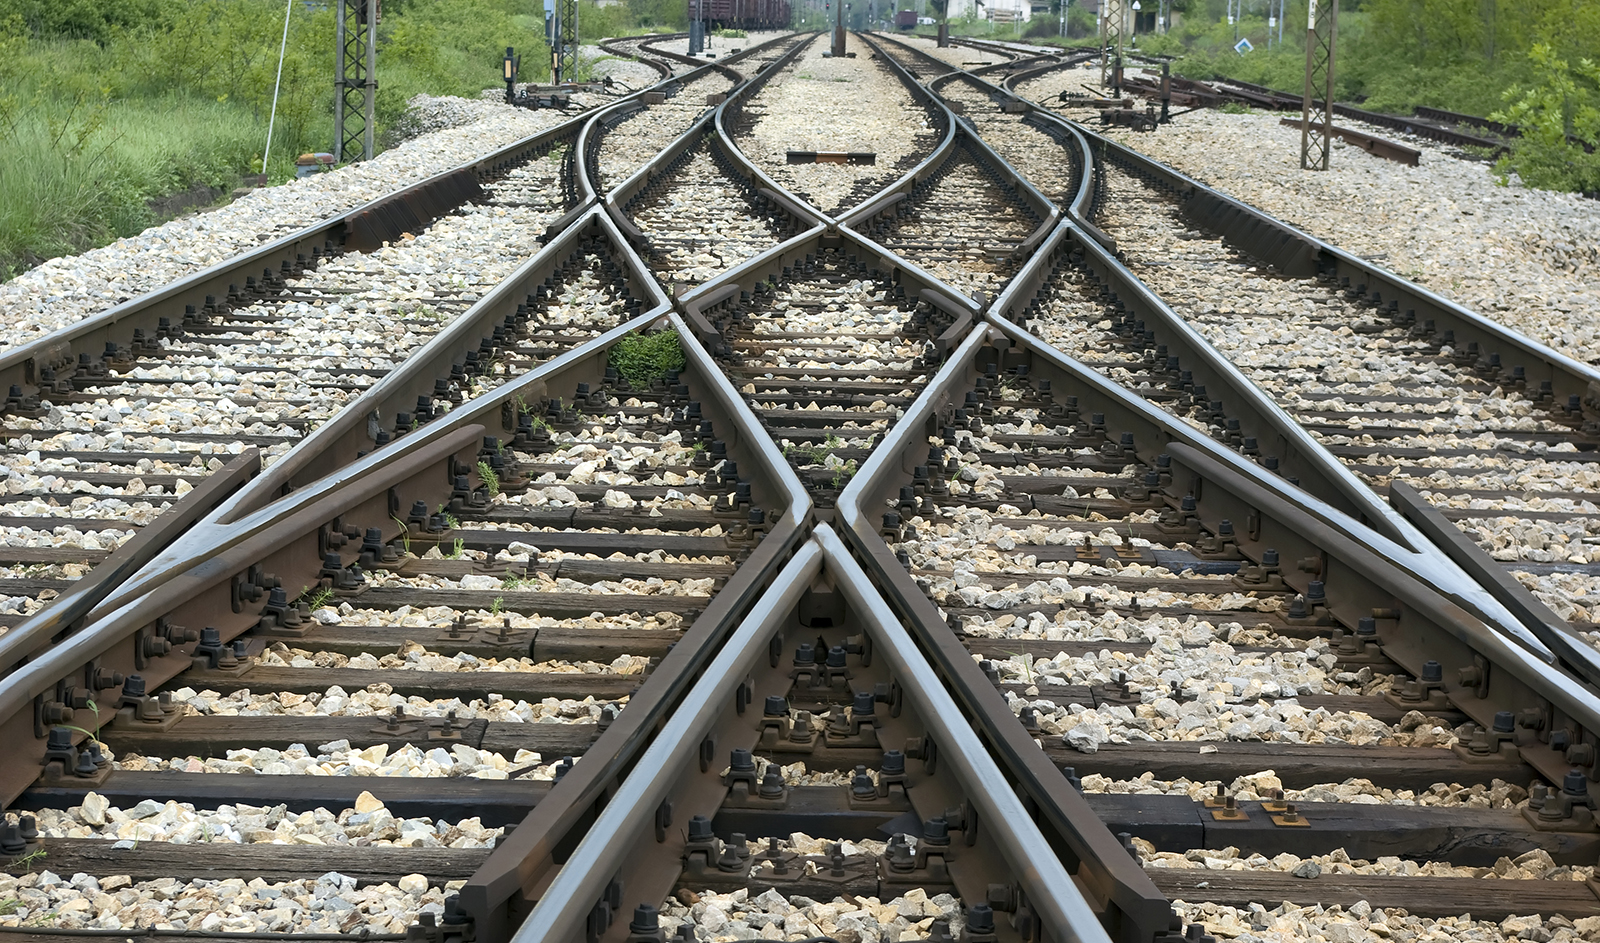 Review and Audit of Modelling of Competing Track Access Applications, Office of Rail and Road